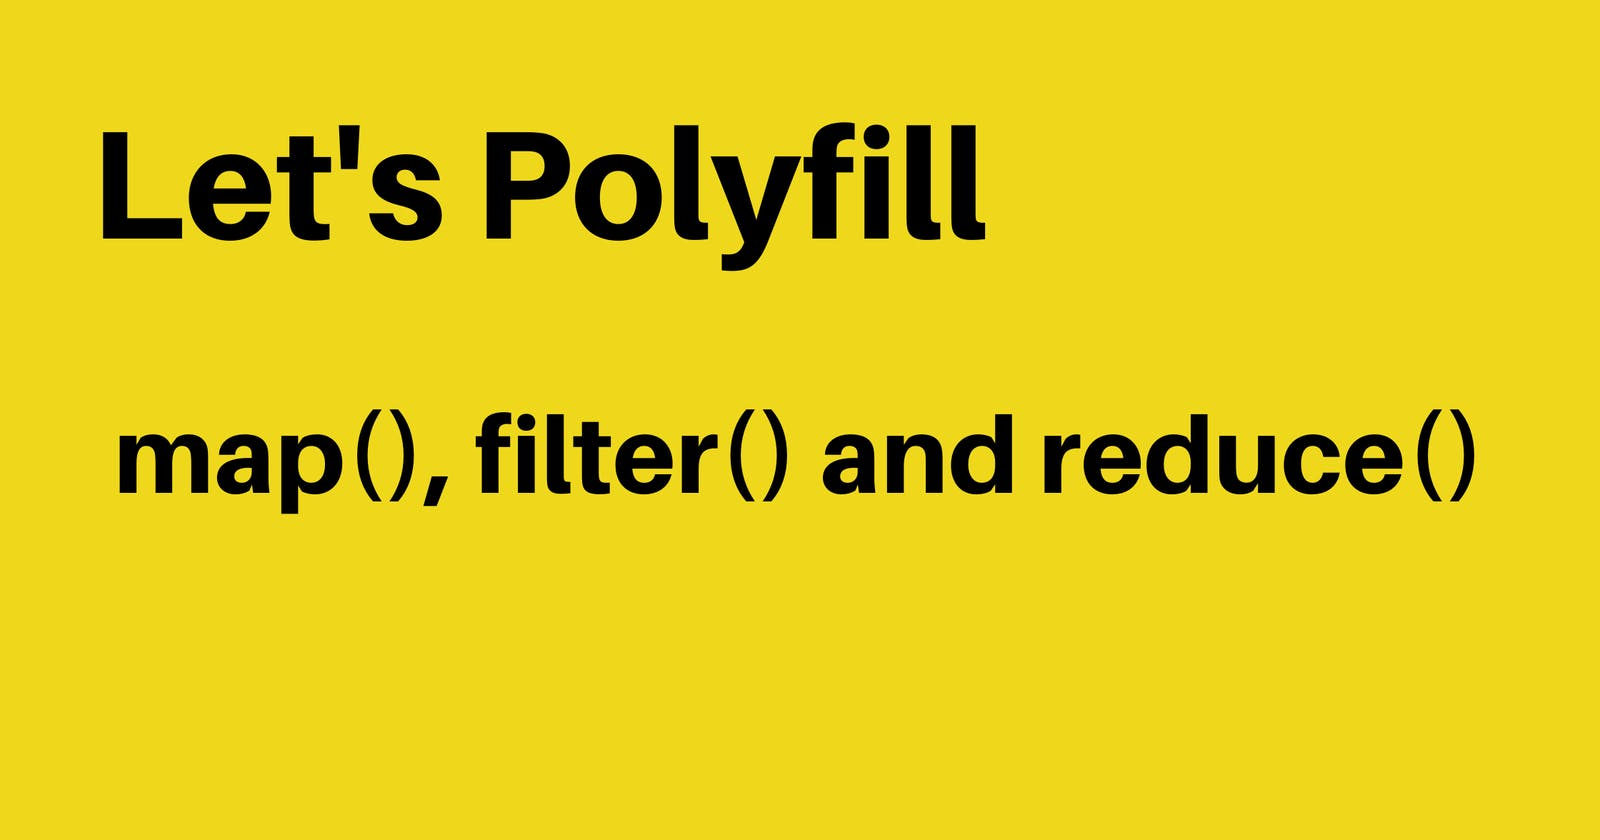 Let's Polyfill - map(), filter() and reduce()